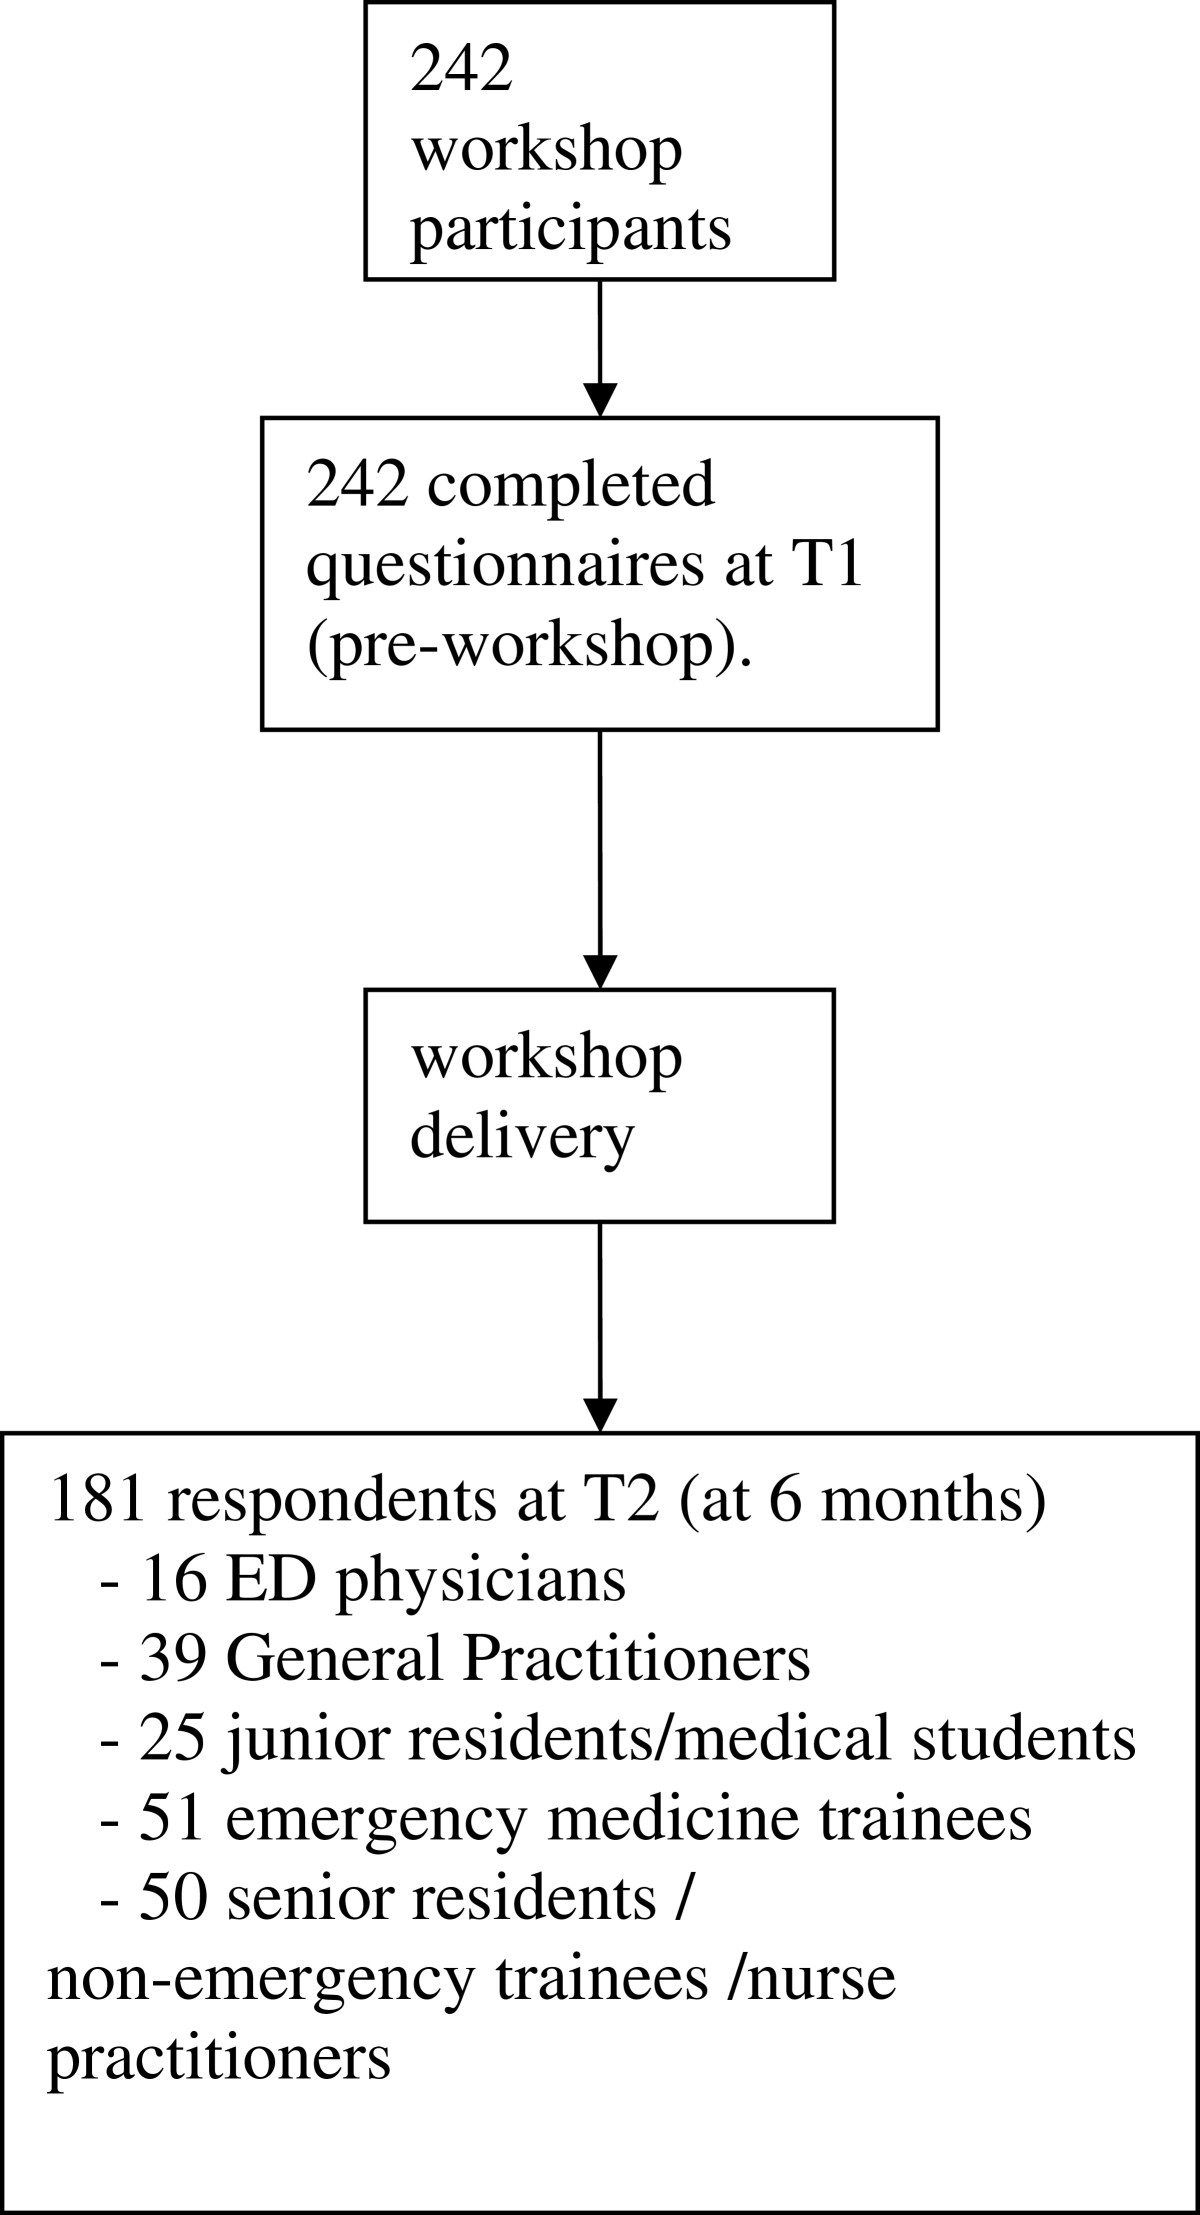 https://static-content.springer.com/image/art%3A10.1186%2F1472-6920-12-103/MediaObjects/12909_2011_Article_652_Fig2_HTML.jpg